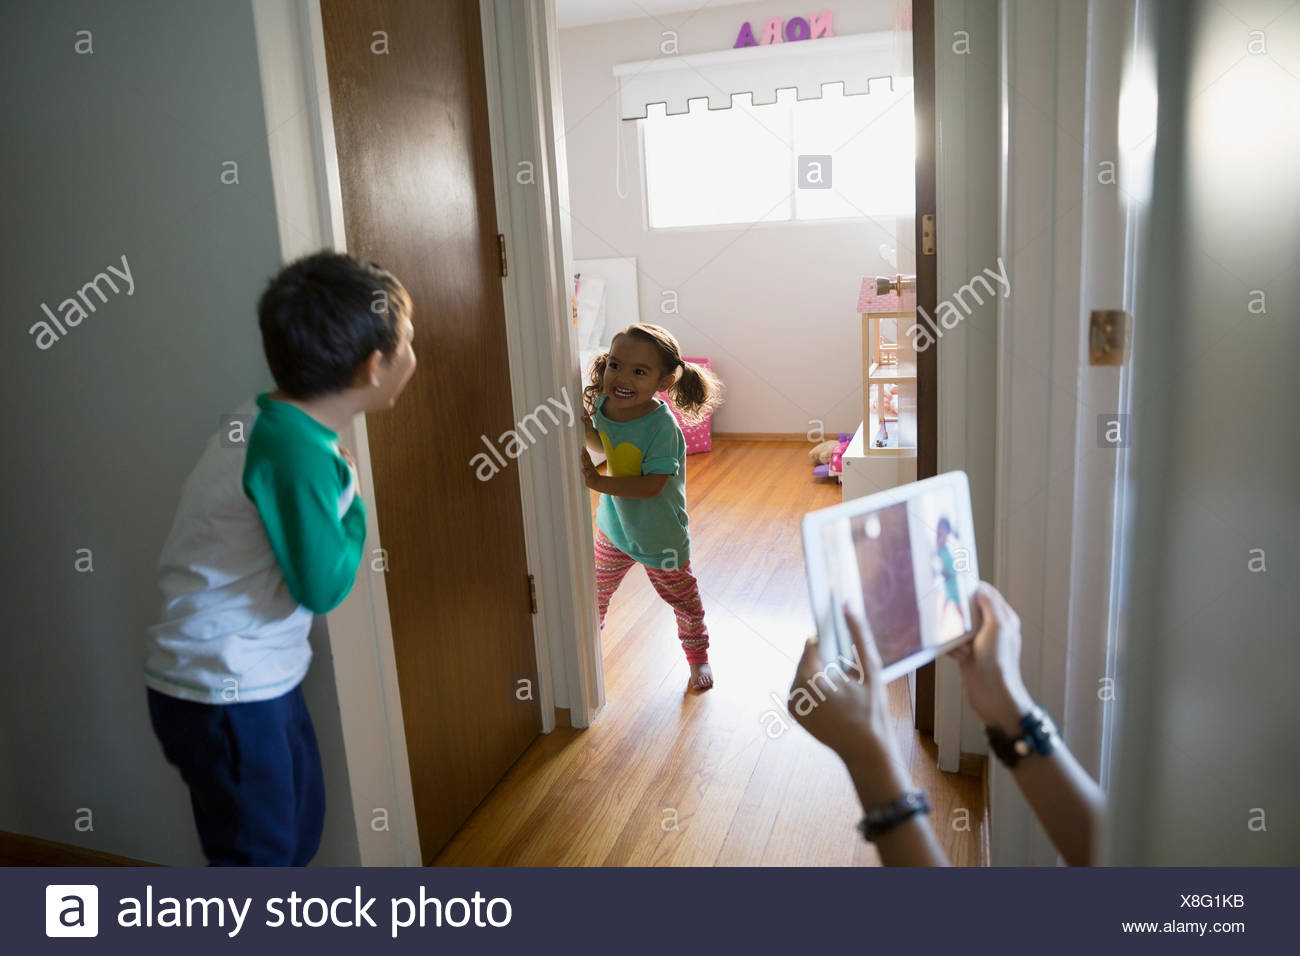 Mother photographing brother and sister playing in corridor - Stock Image